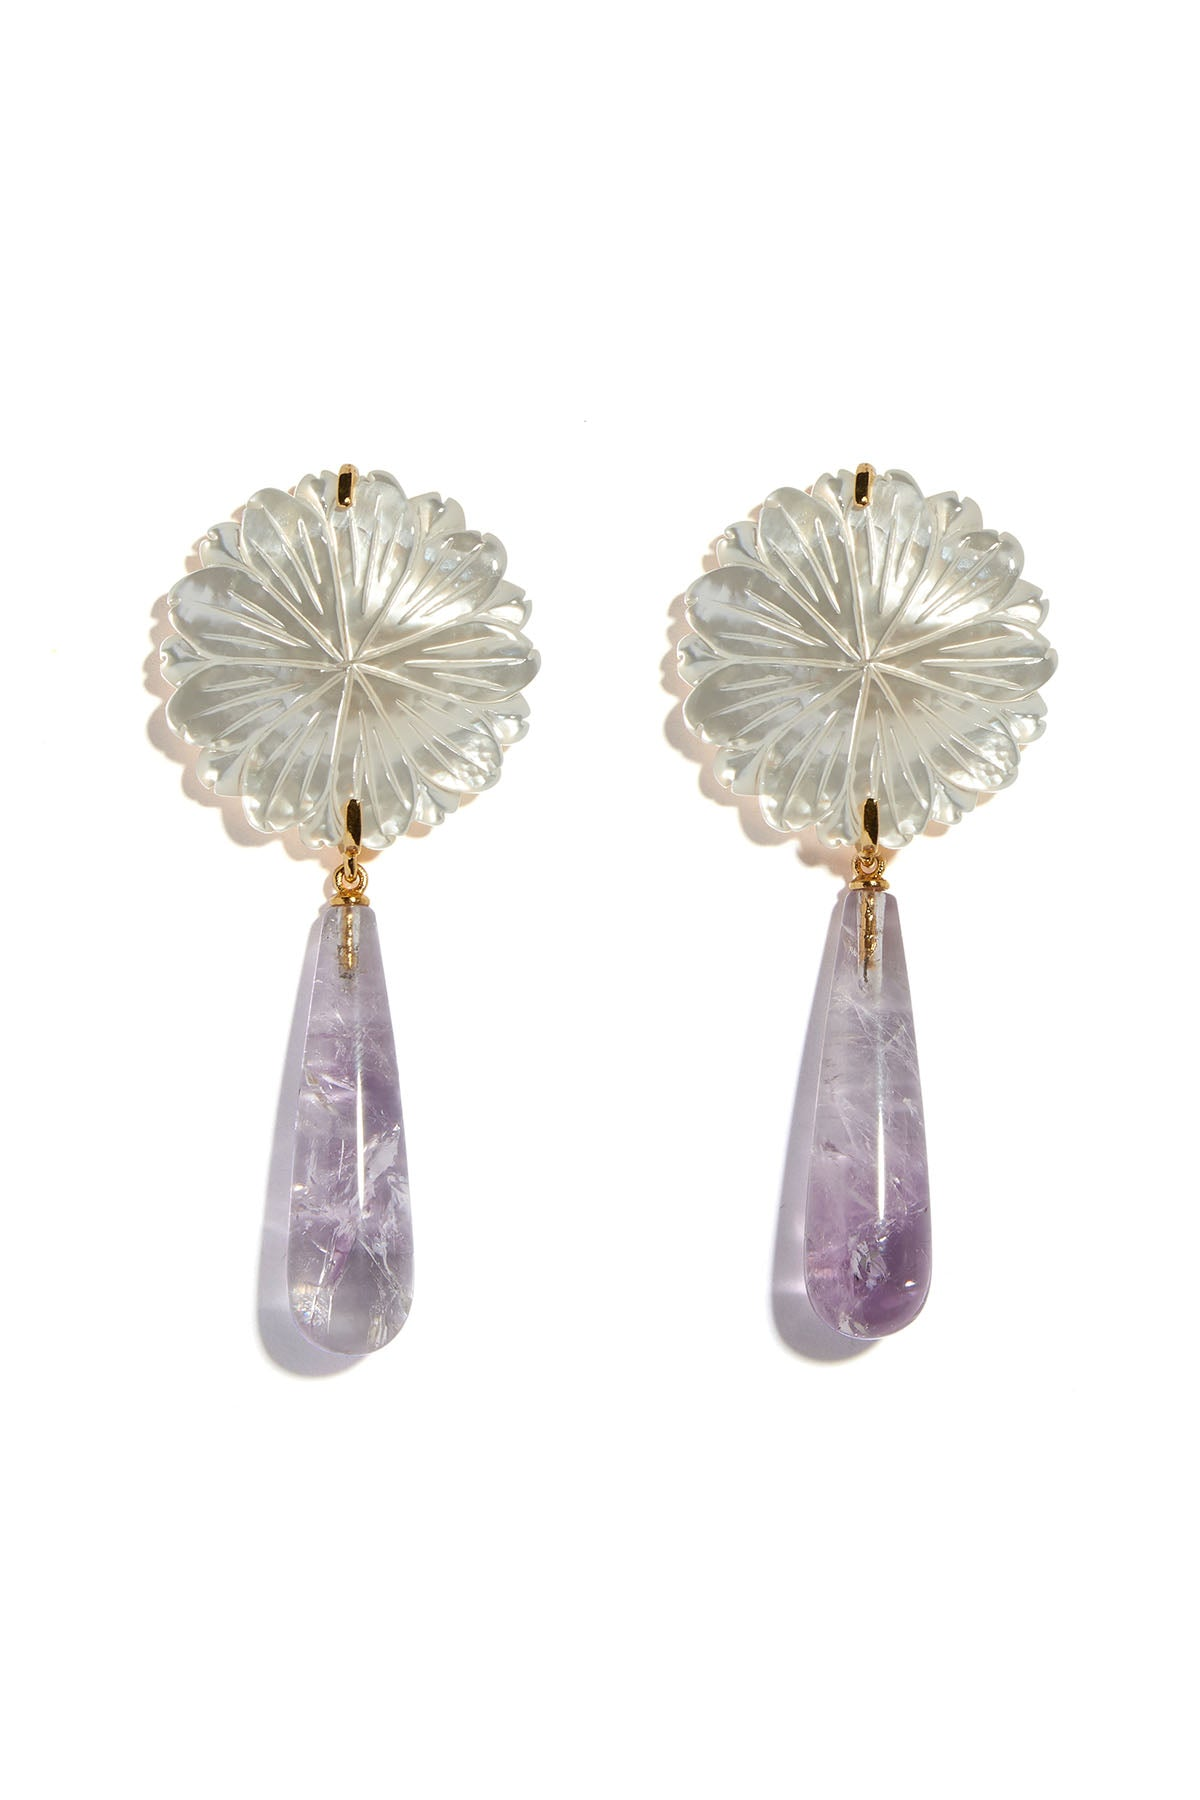 Lizzie Fortunato - lilac bloom earrings, amethyst